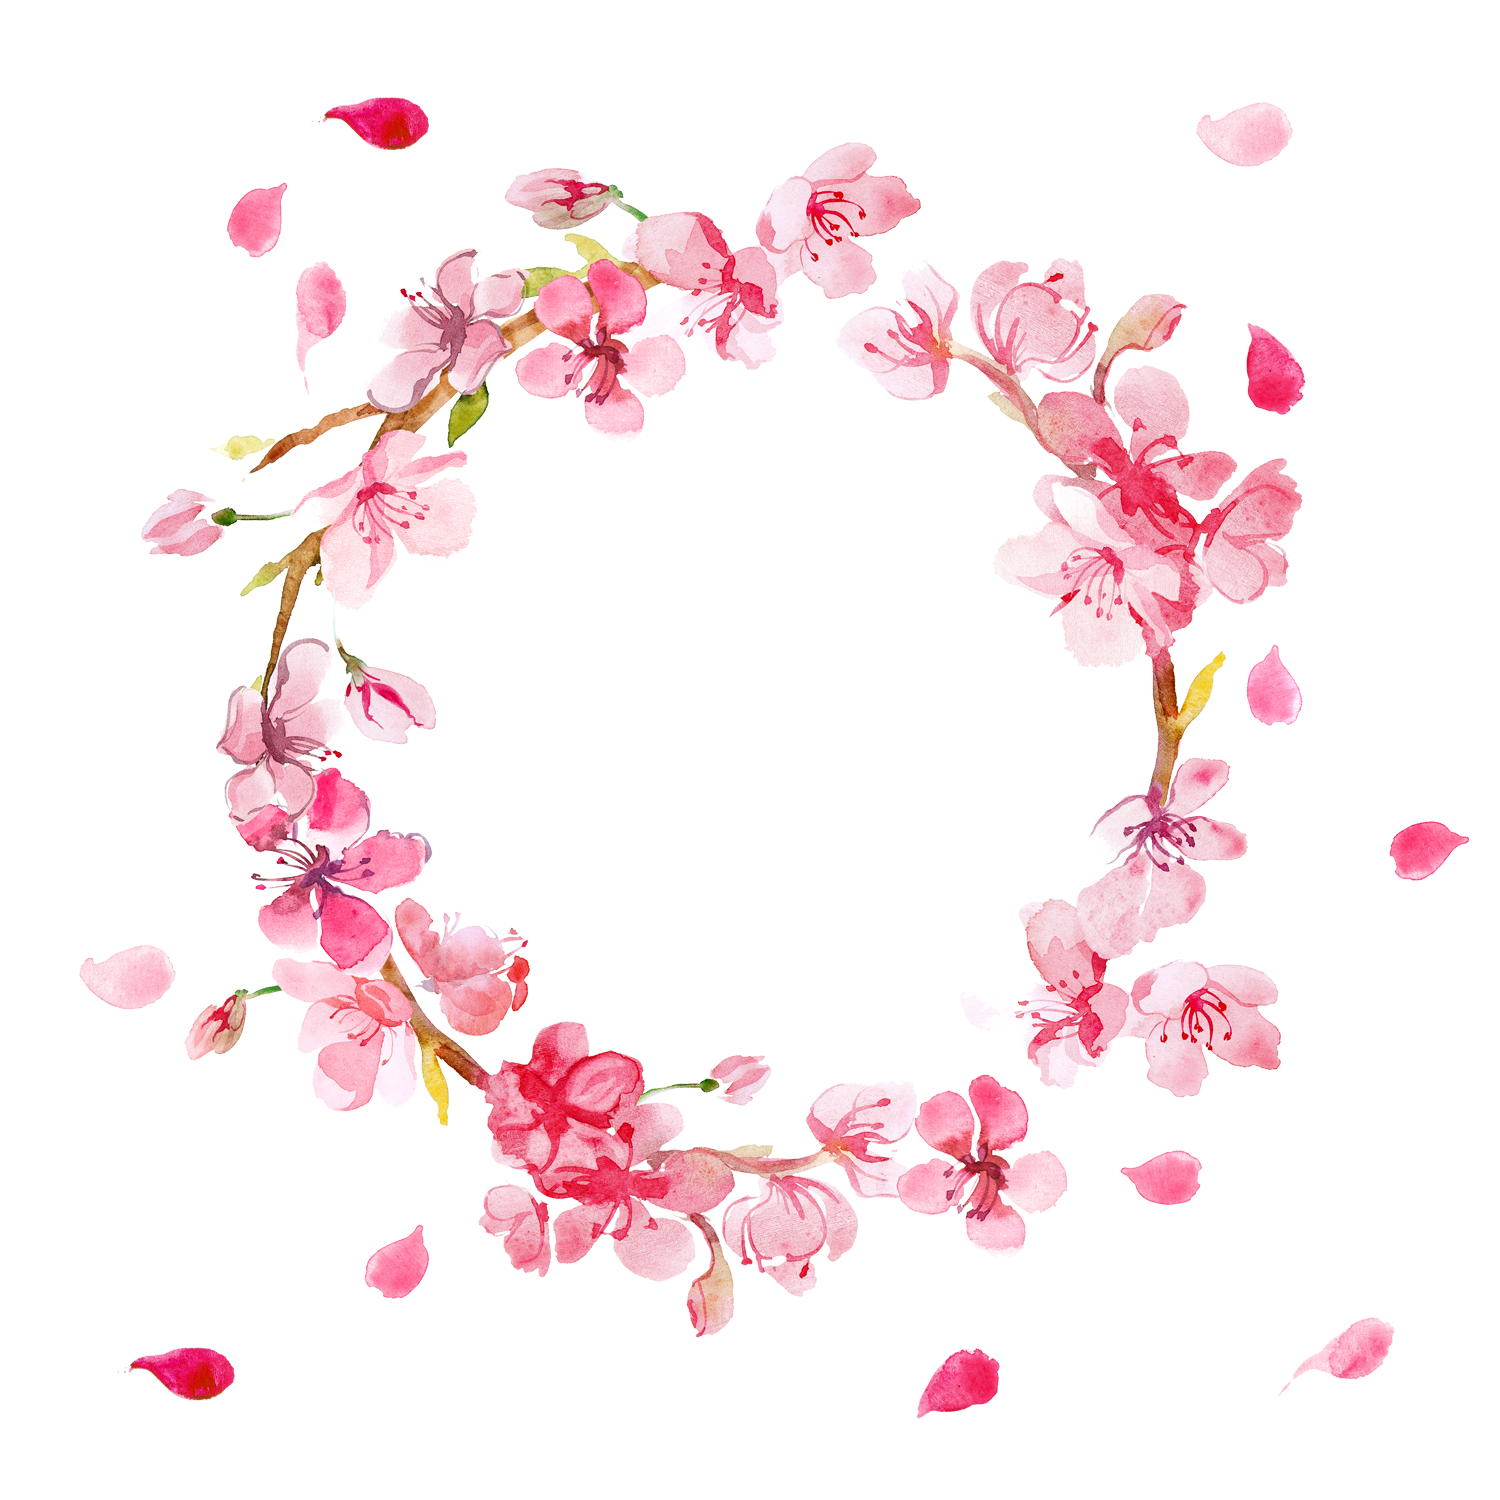 Hd transparent images pluspng. Flower wreath png